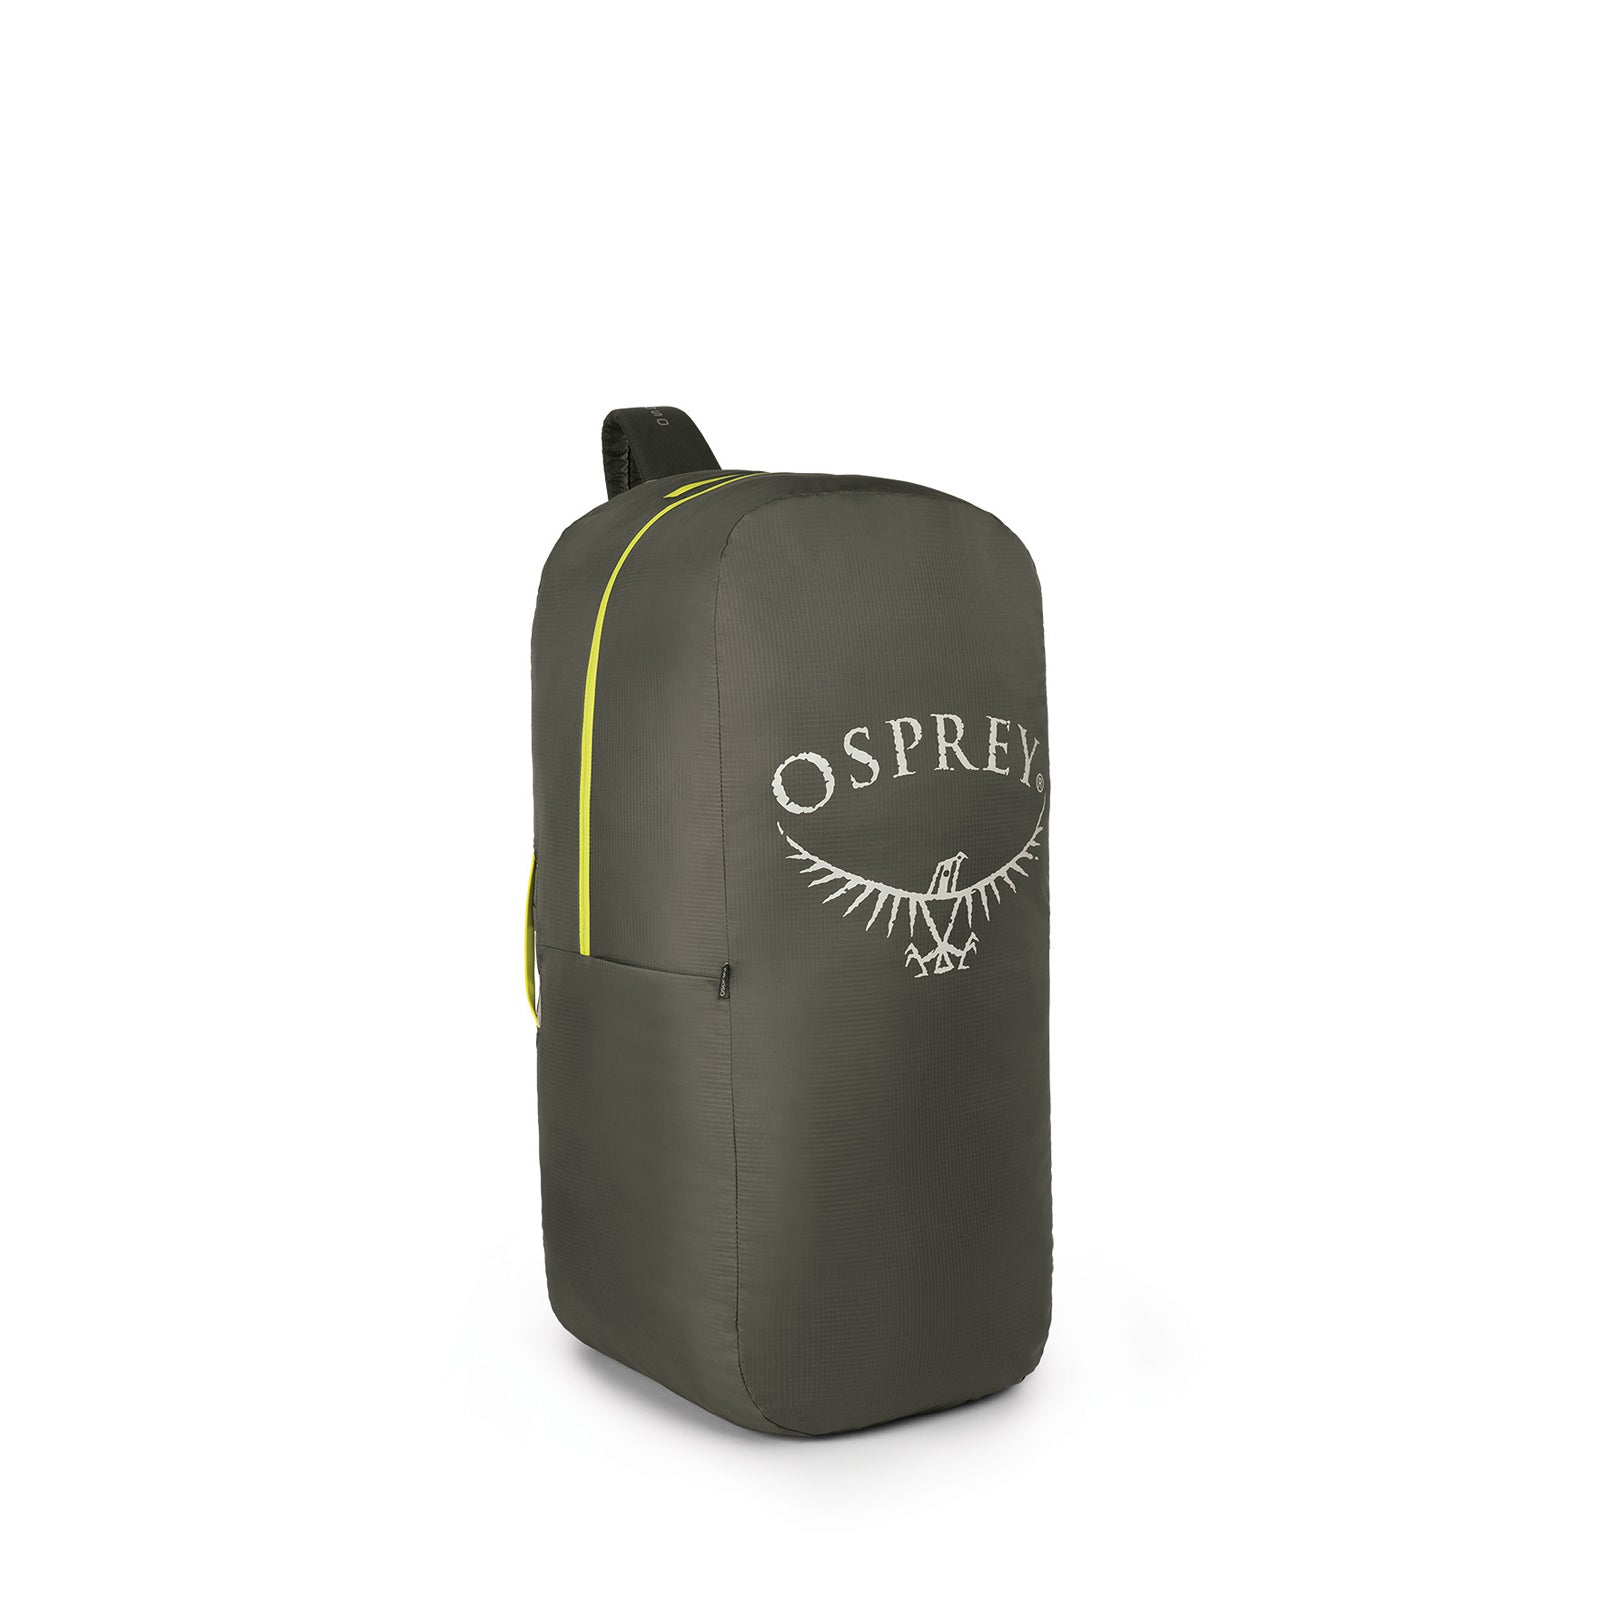 Osprey Airporter Travel Pack Protector - Small (<50L)